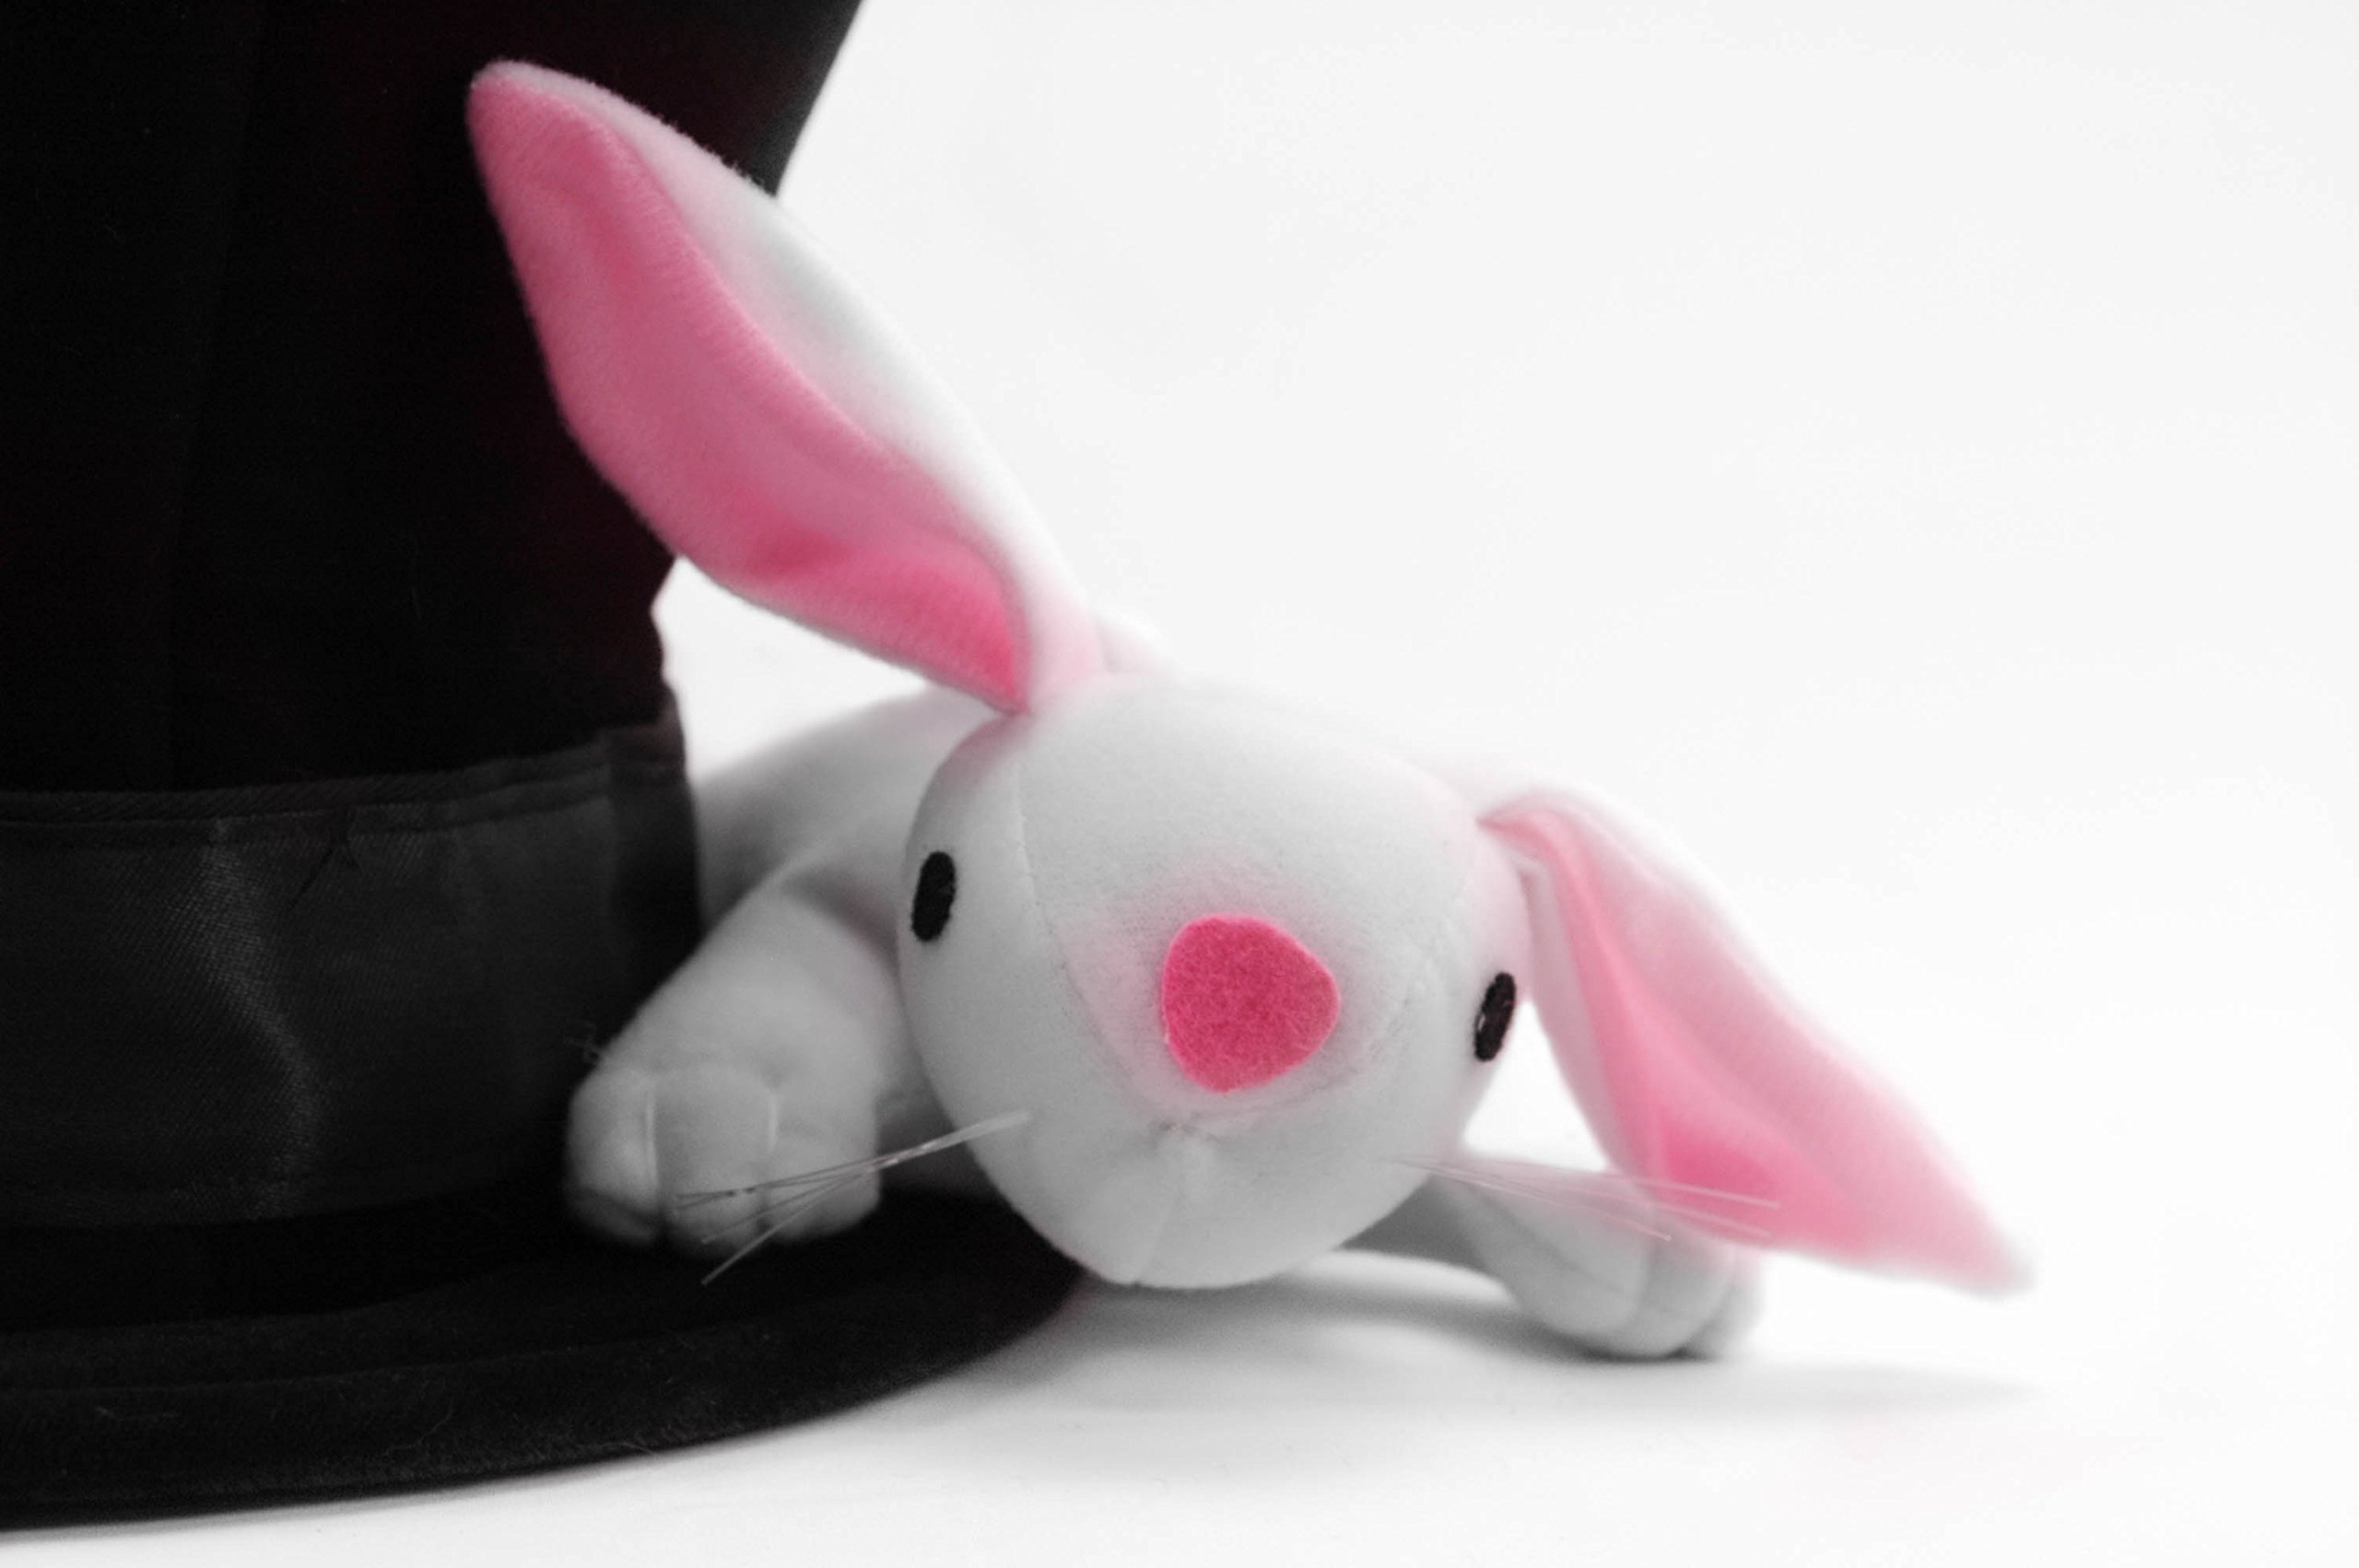 elope Magician Hat with Rabbit for Teens and Adults by elope (Image #3)